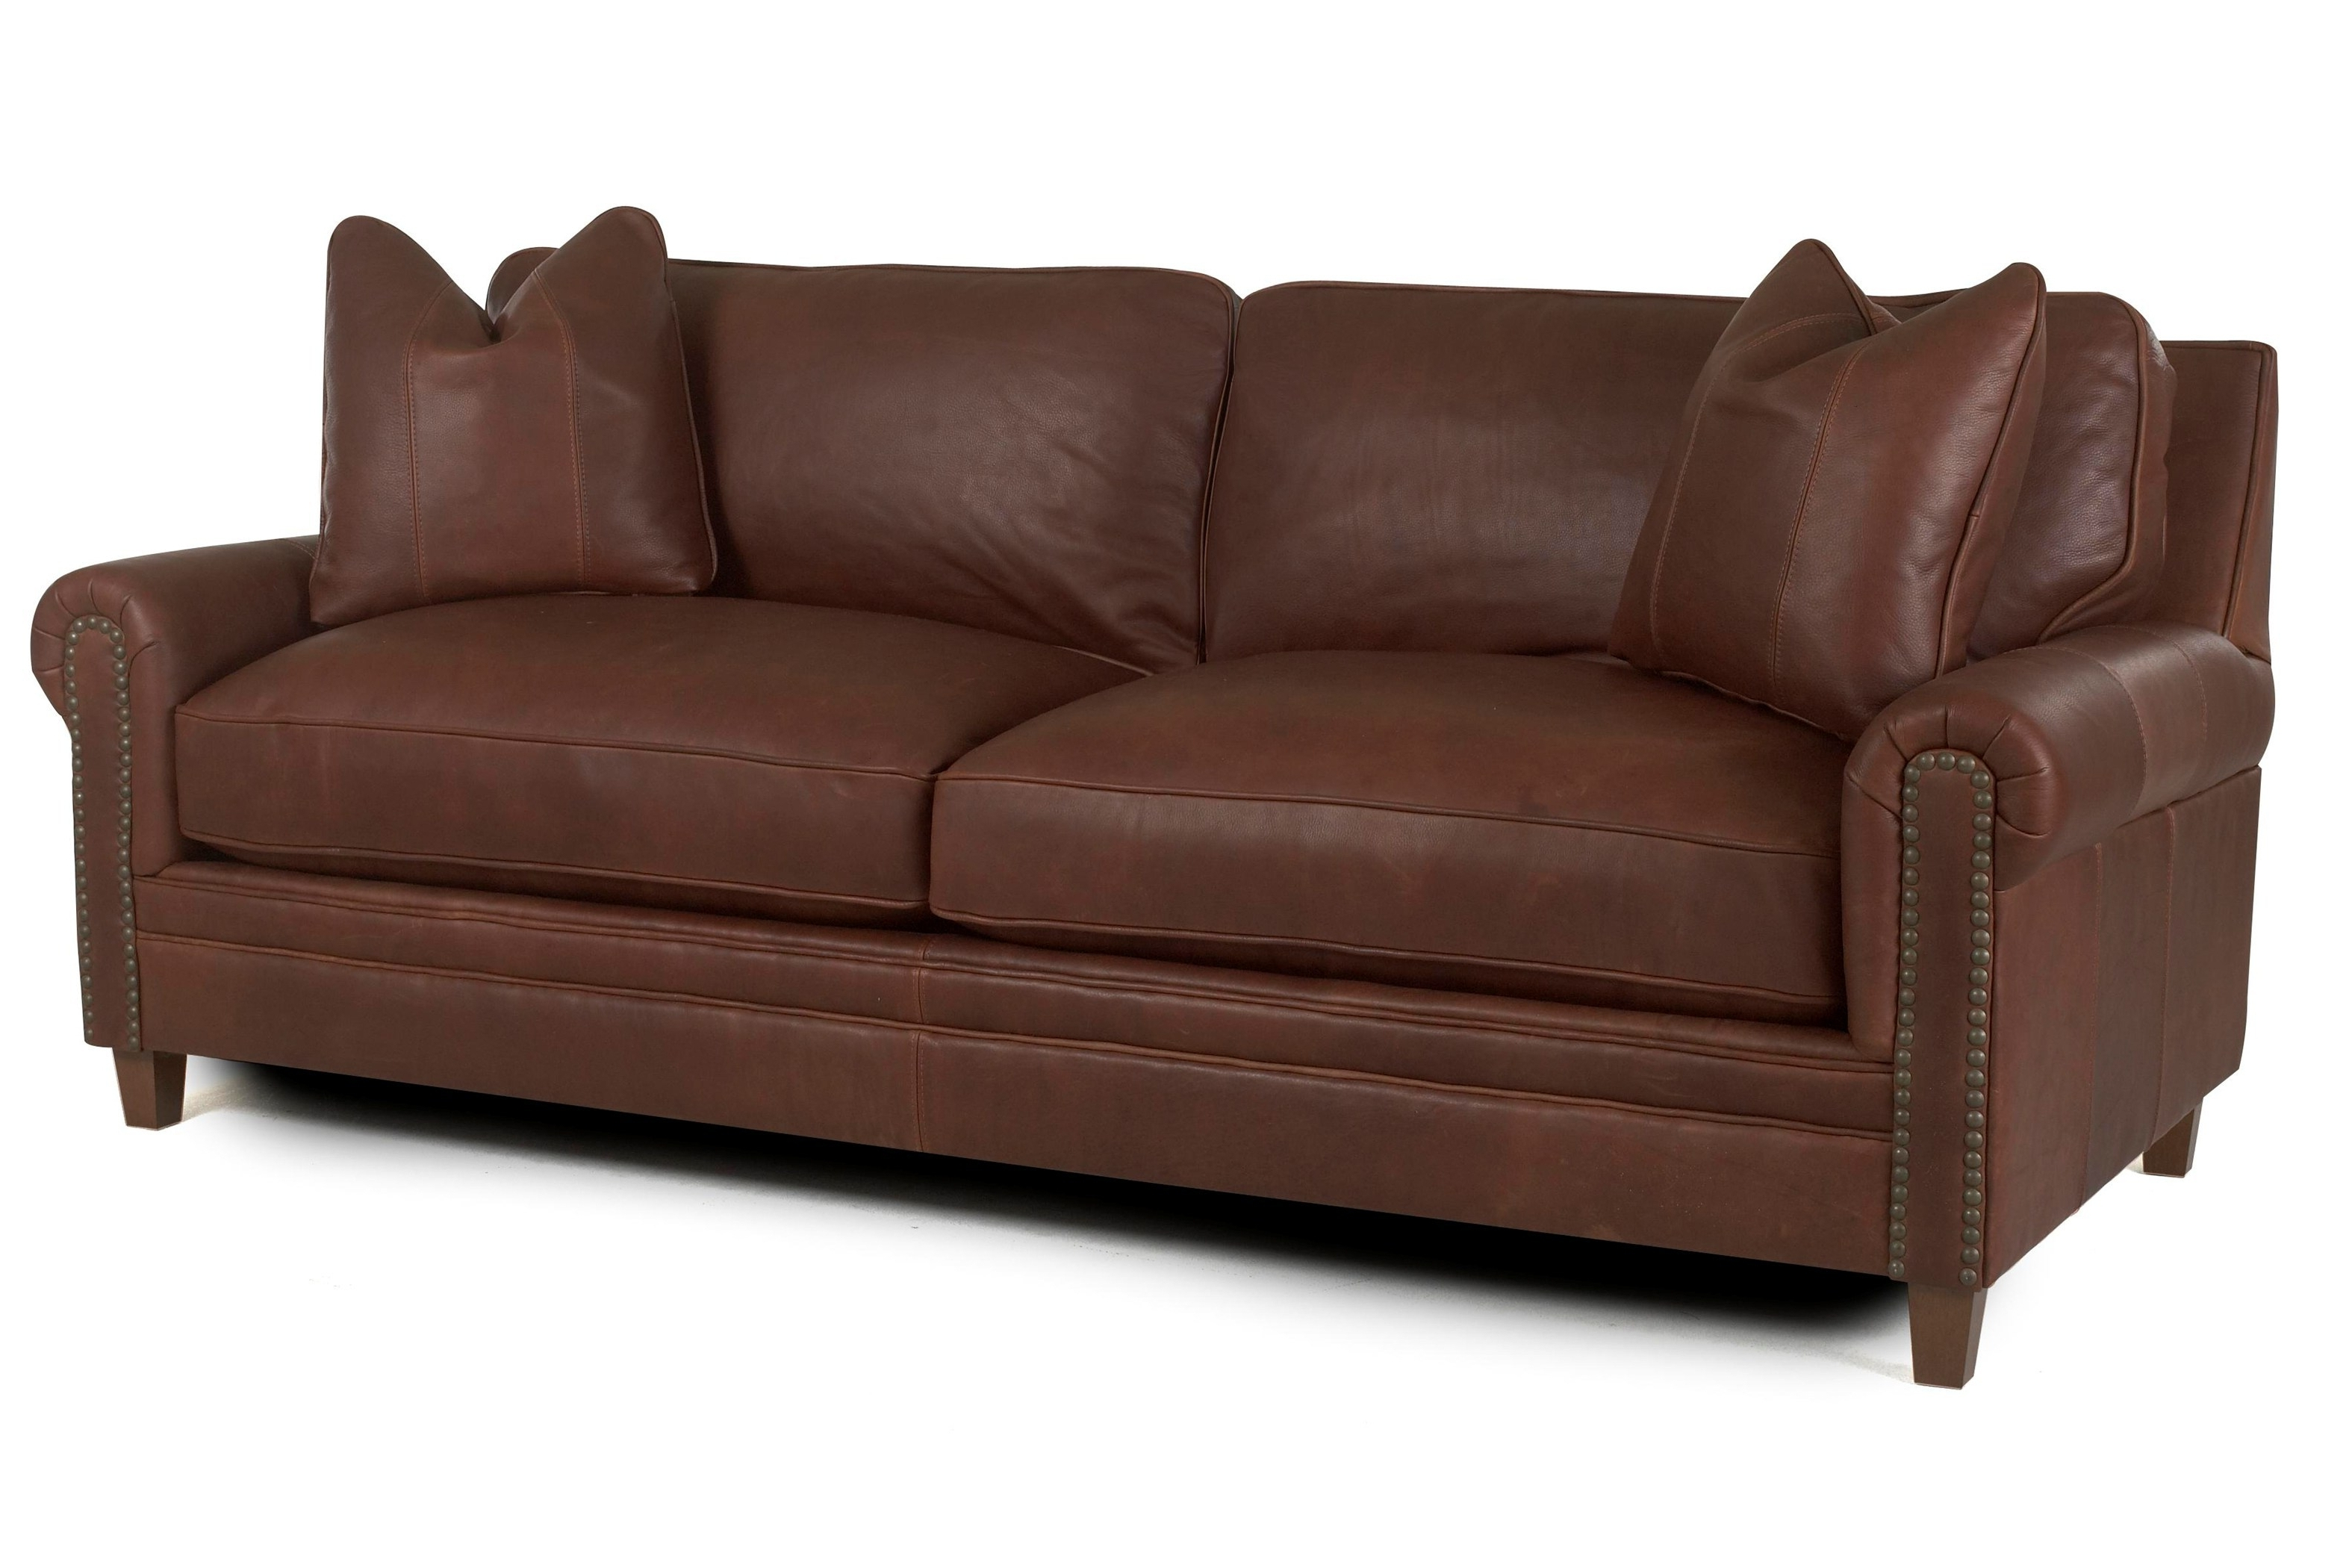 Sears Sofas Intended For Well Known Furniture: Ty Pennington Style Mayfield Seat Sofa Sears Outlet (View 11 of 20)